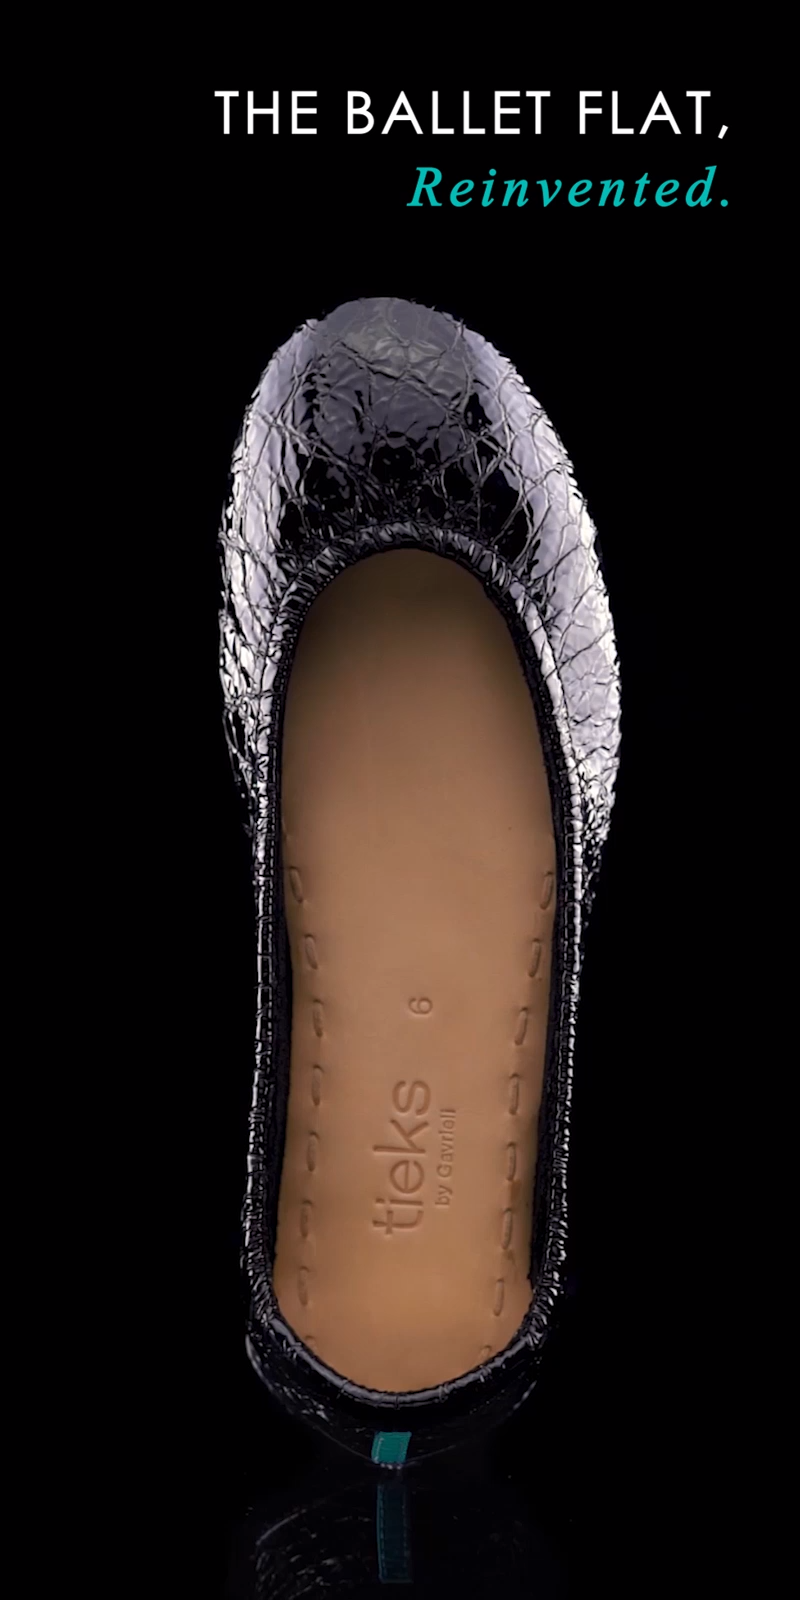 Learn More About The Ballet Flat, Reinvented